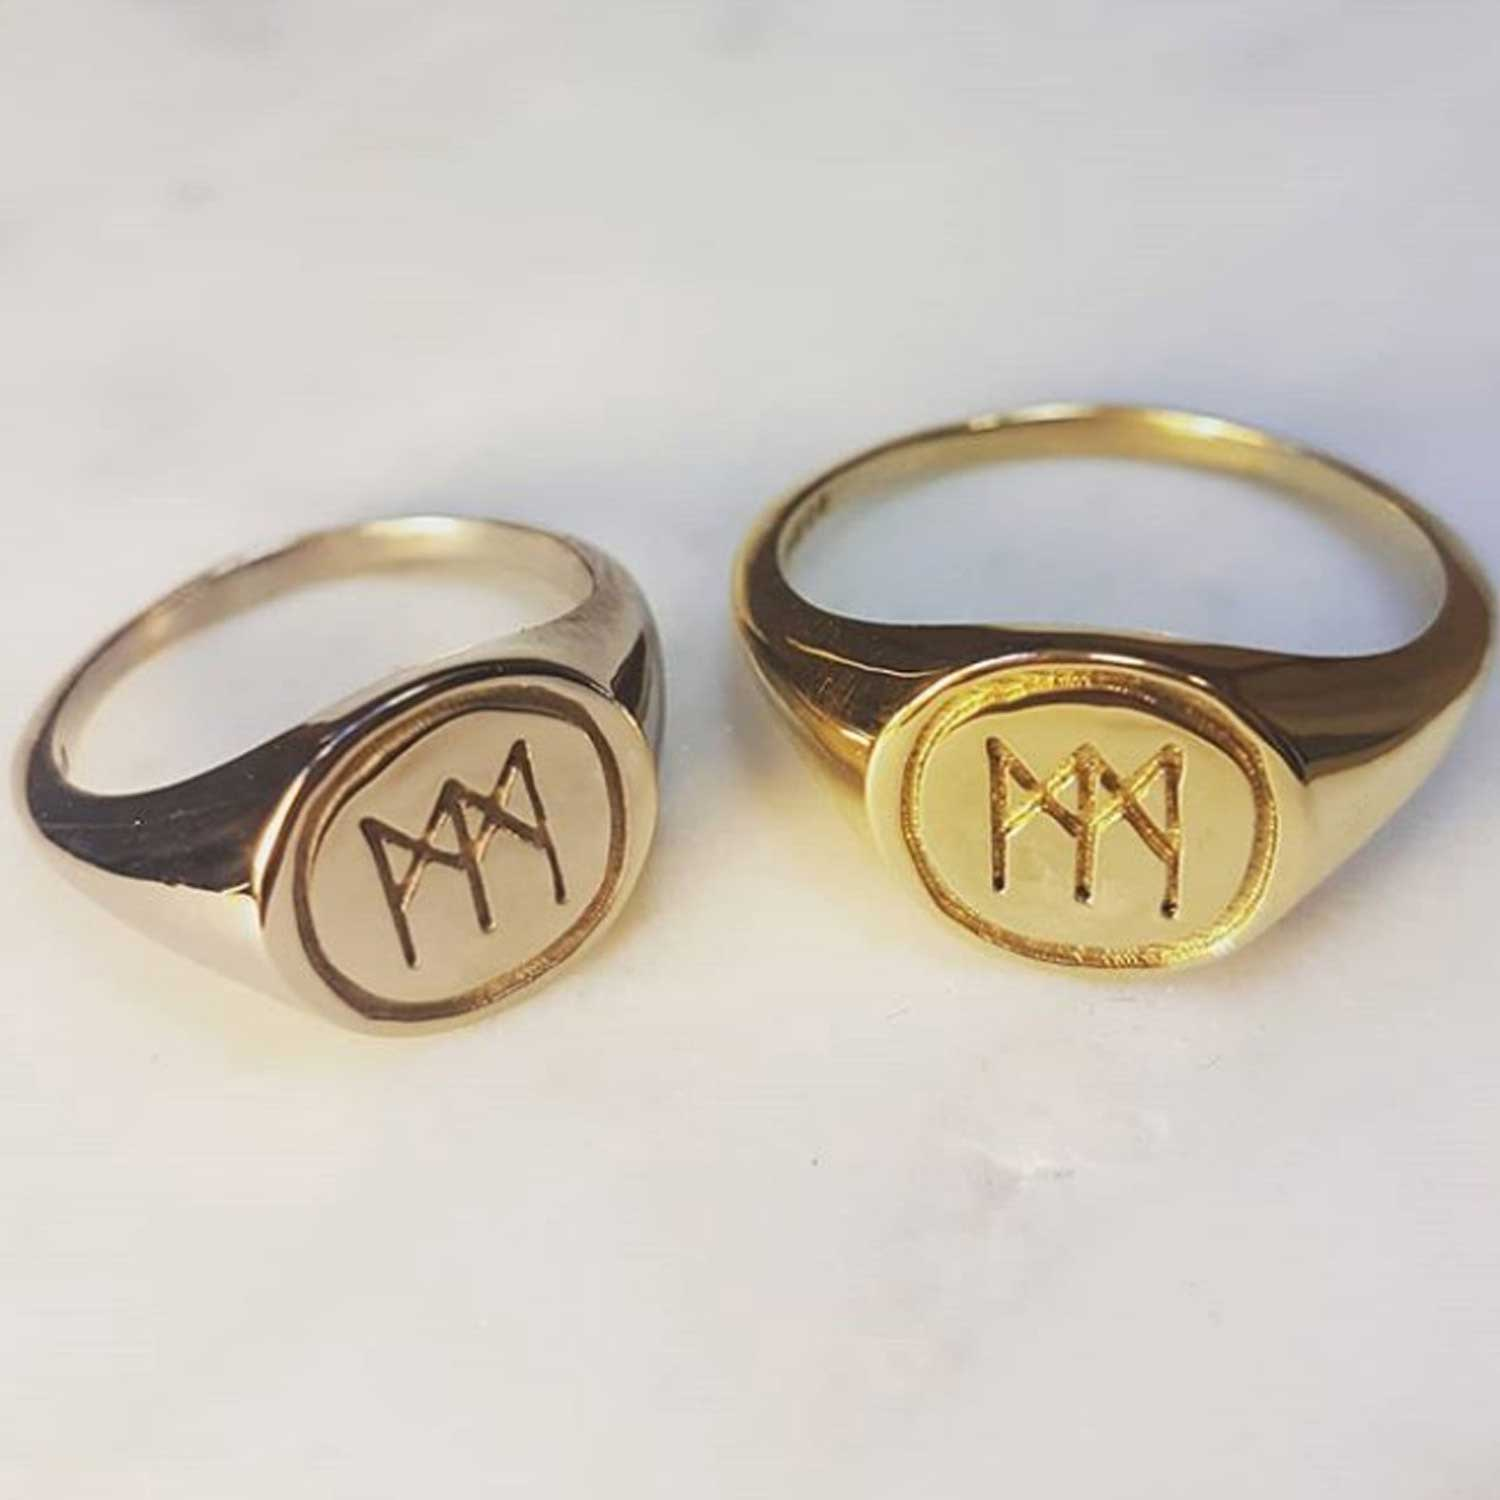 """Personalised Signet Rings - I created these 18ct gold signet rings for Iona & Joss, who wanted their initials engraved in a logo they designed themselves as alternate engagement rings.""""We love them so much! Thank you :)"""" - Iona McMurphy"""